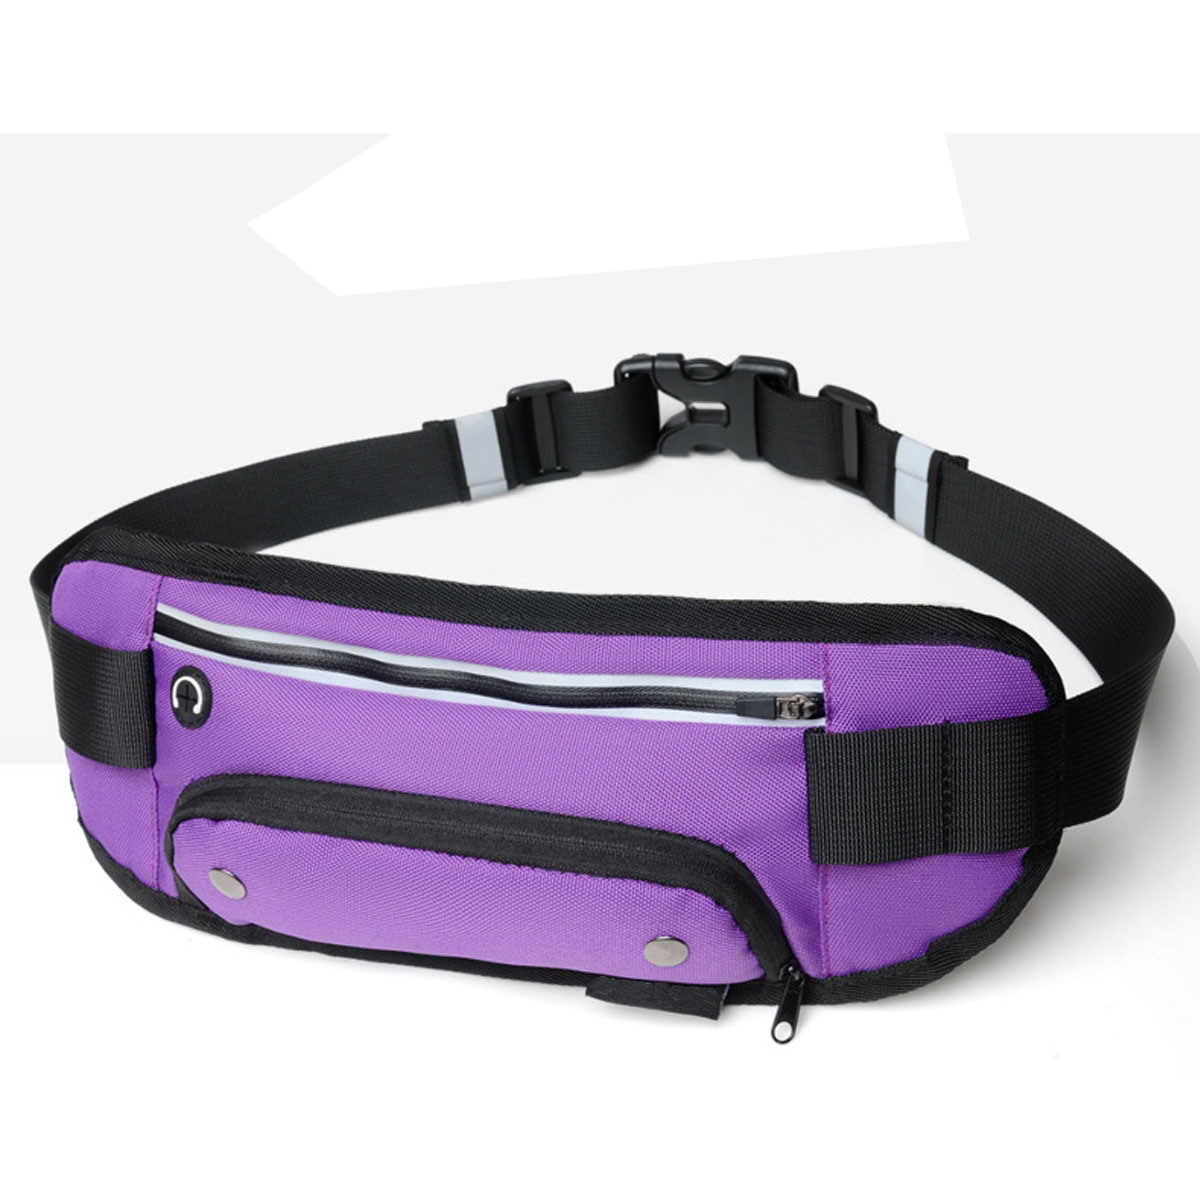 Outdoor Sports Waist Bag Phone Bag Crossbody Bag With Bottle Holder For Running Hiking Climbing